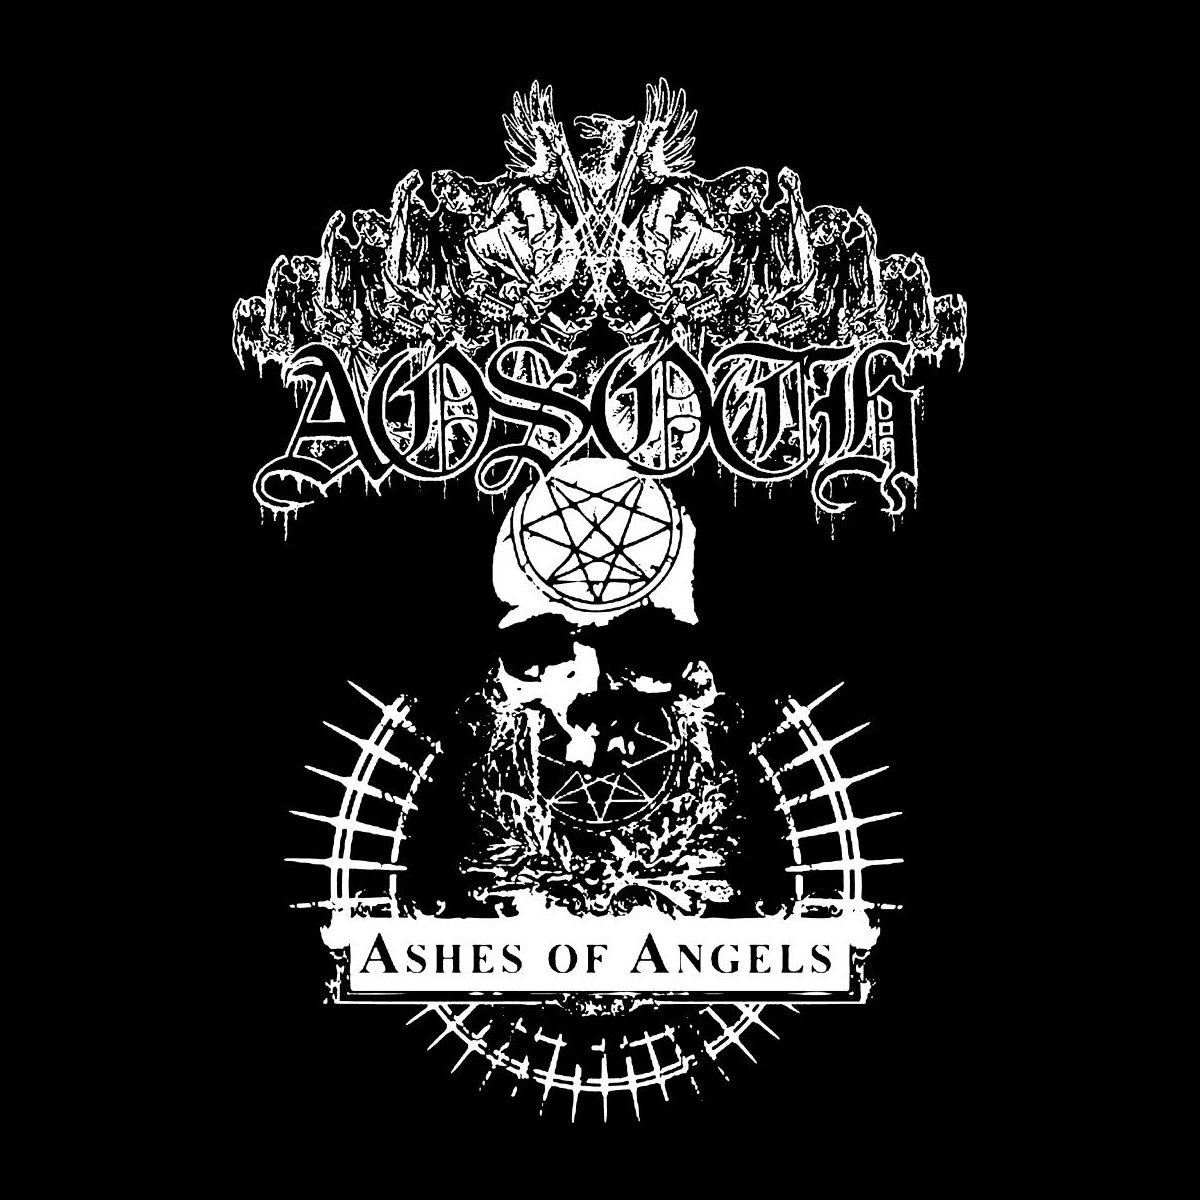 Review for Aosoth - Ashes of Angels